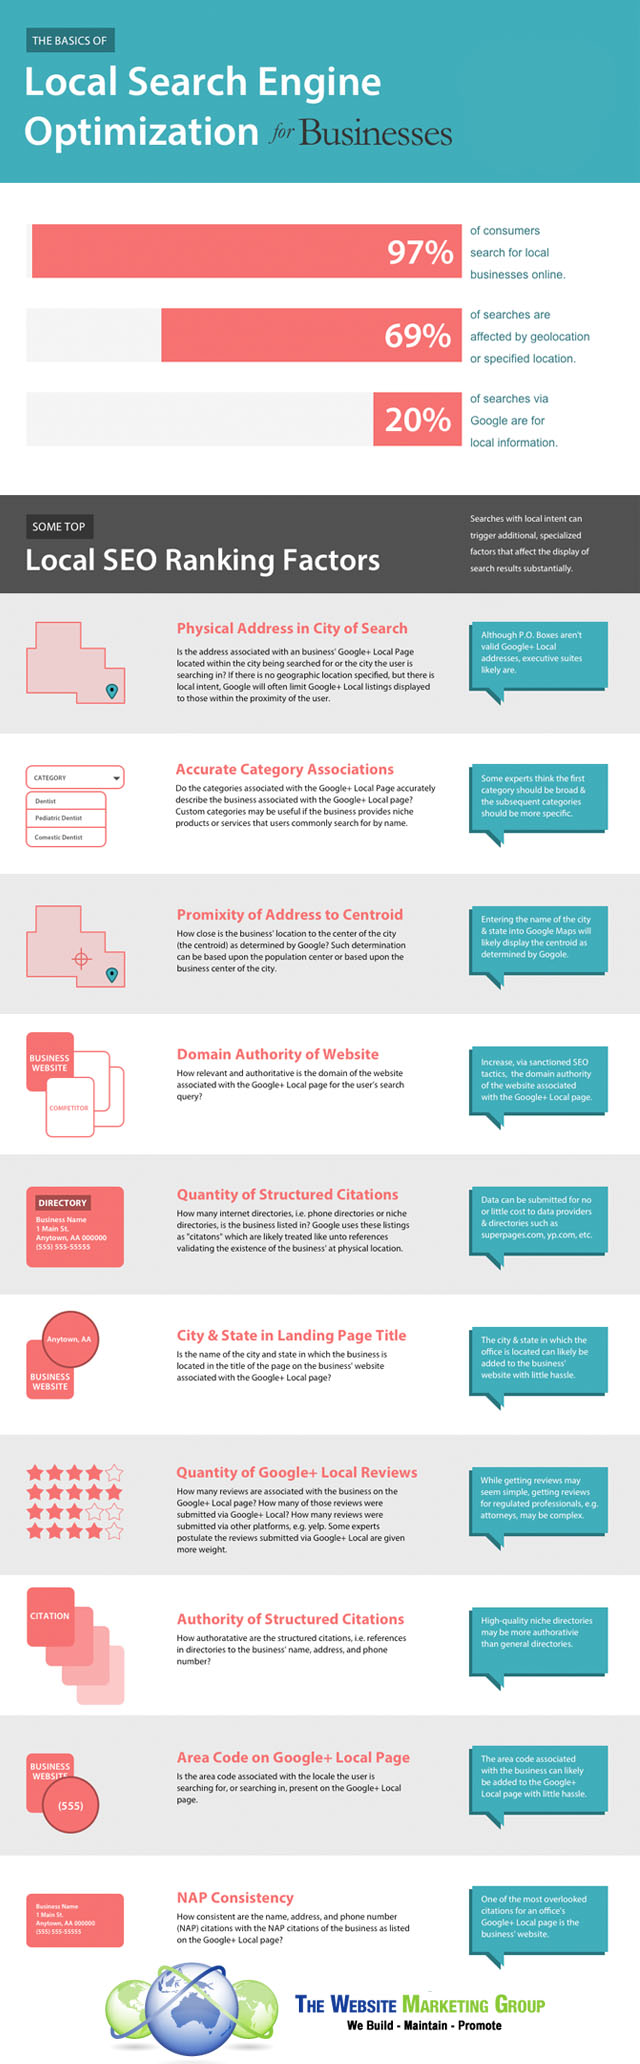 TWMG - Basics of Local SEO For Business - Infographic